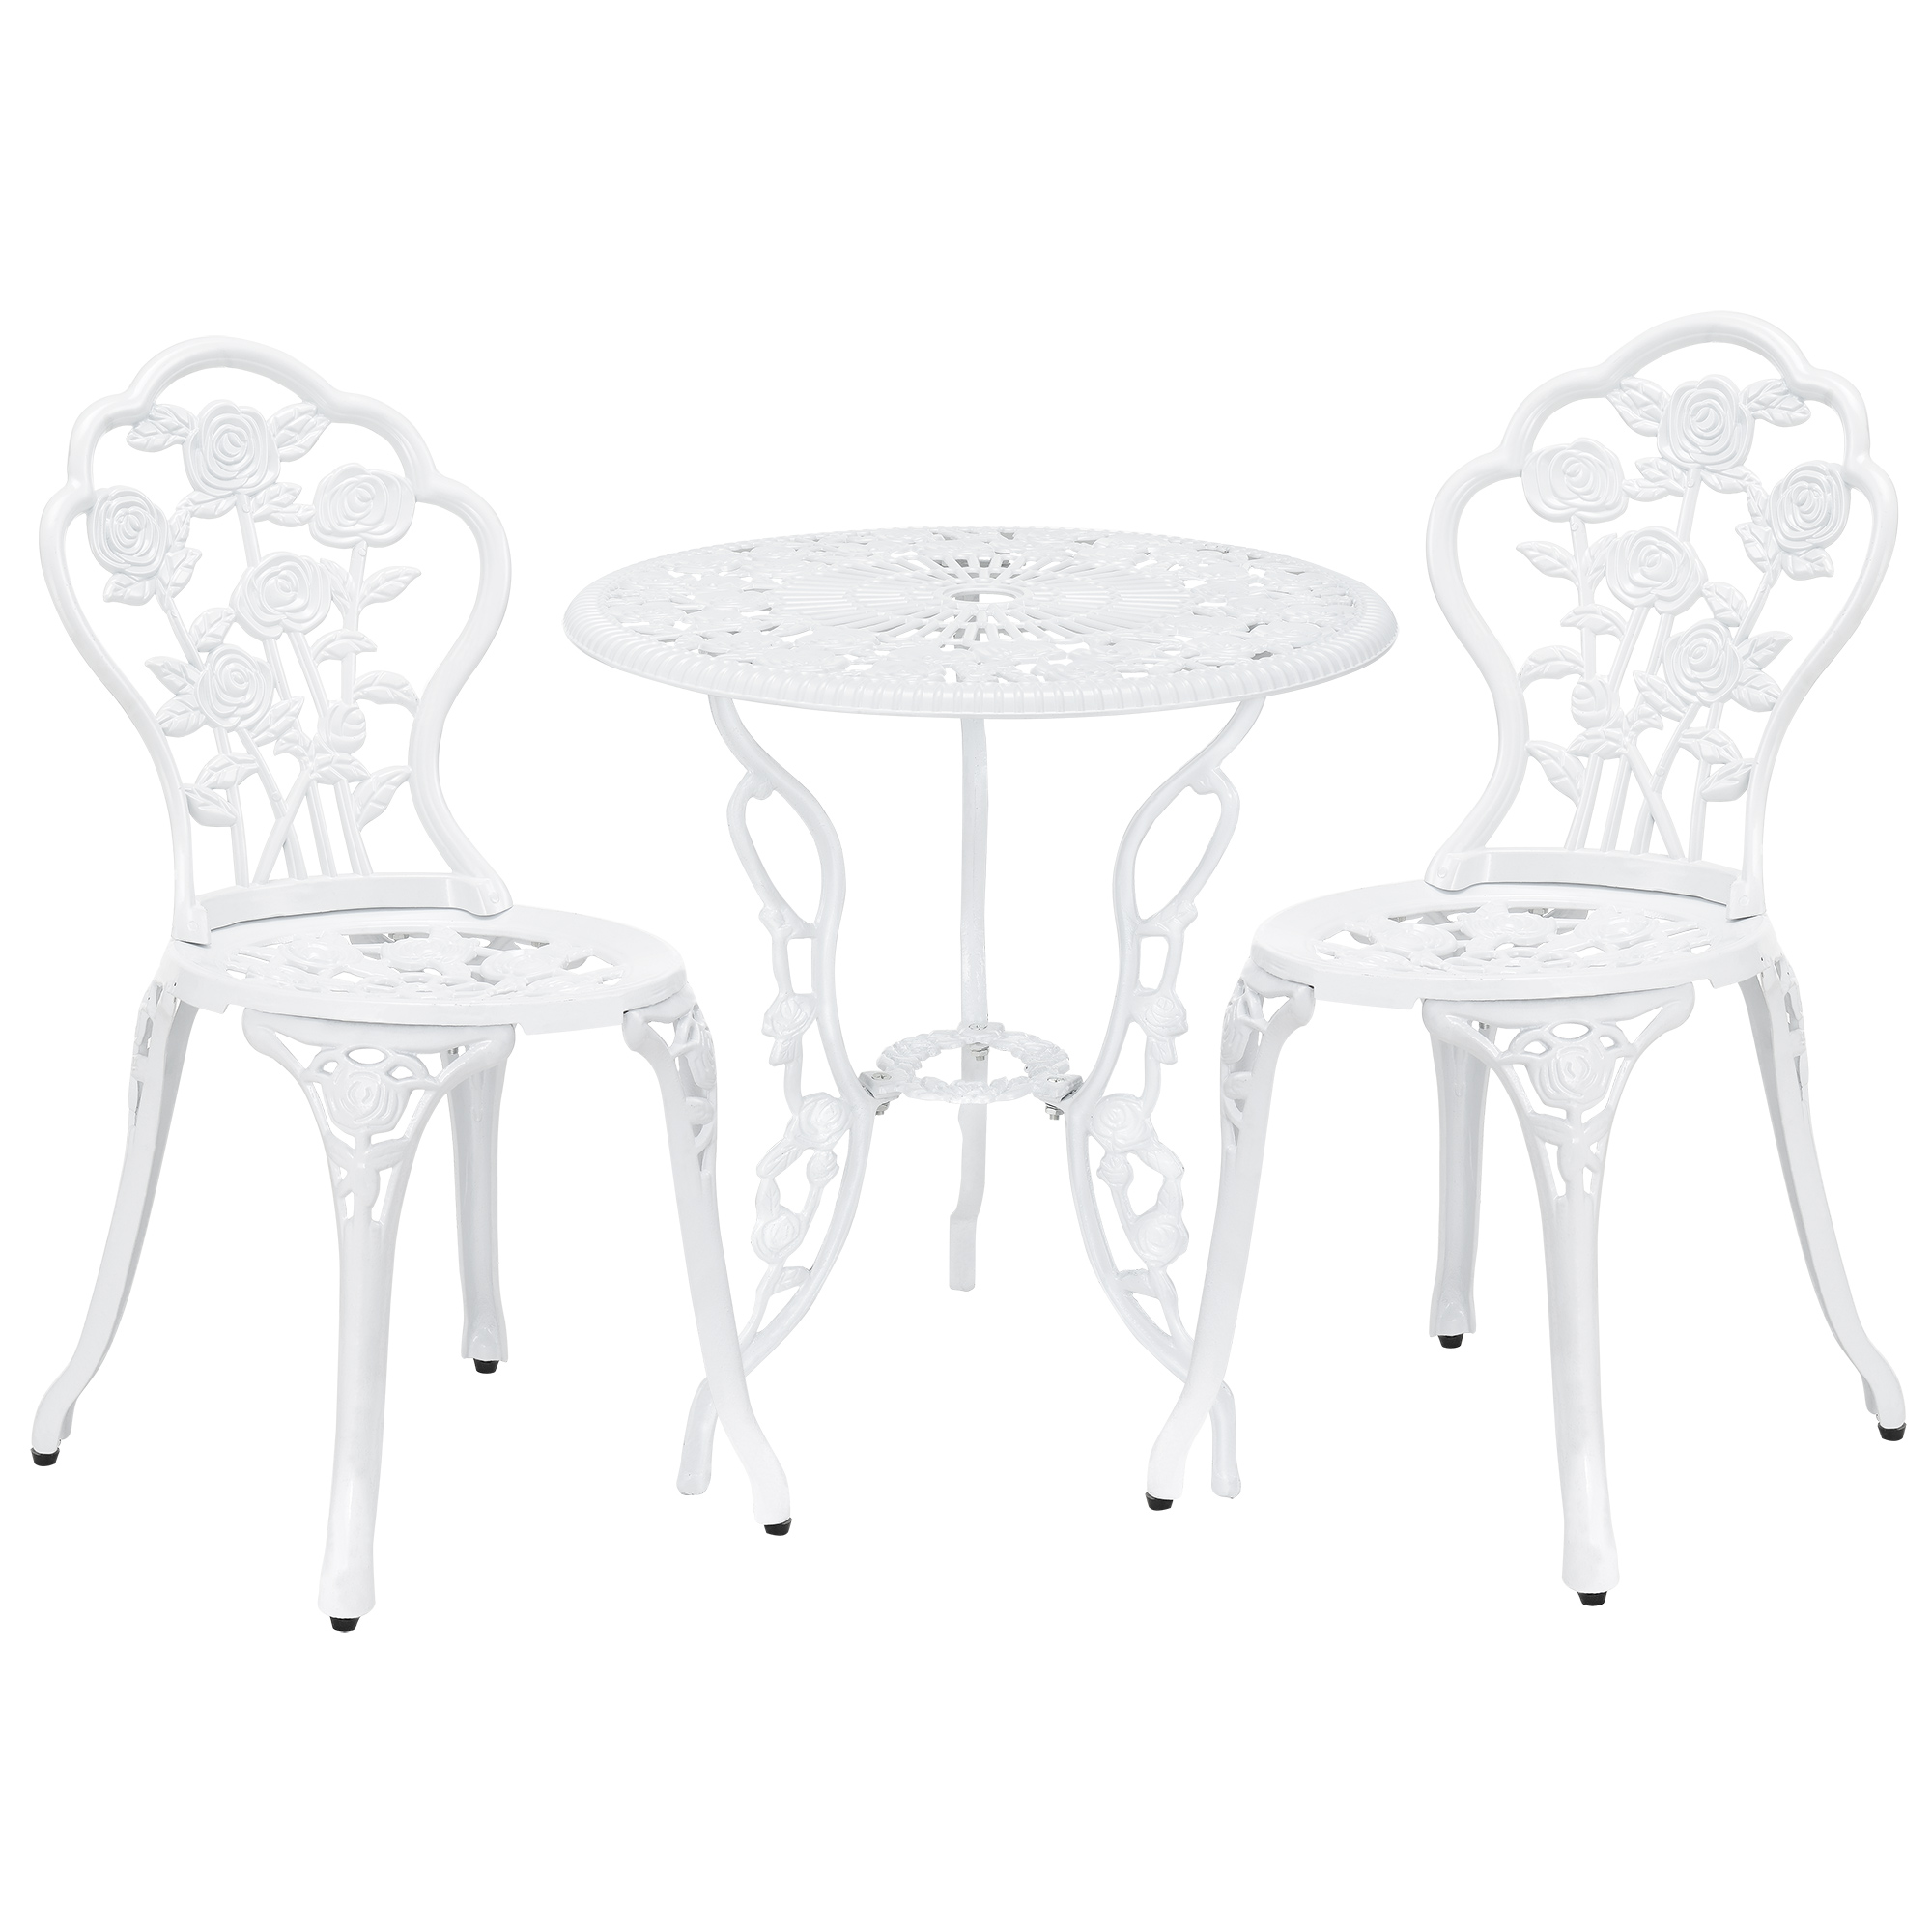 tisch 2 st hle gusseisen antik weiss bistro set garten sitzgarnitur alu guss ebay. Black Bedroom Furniture Sets. Home Design Ideas